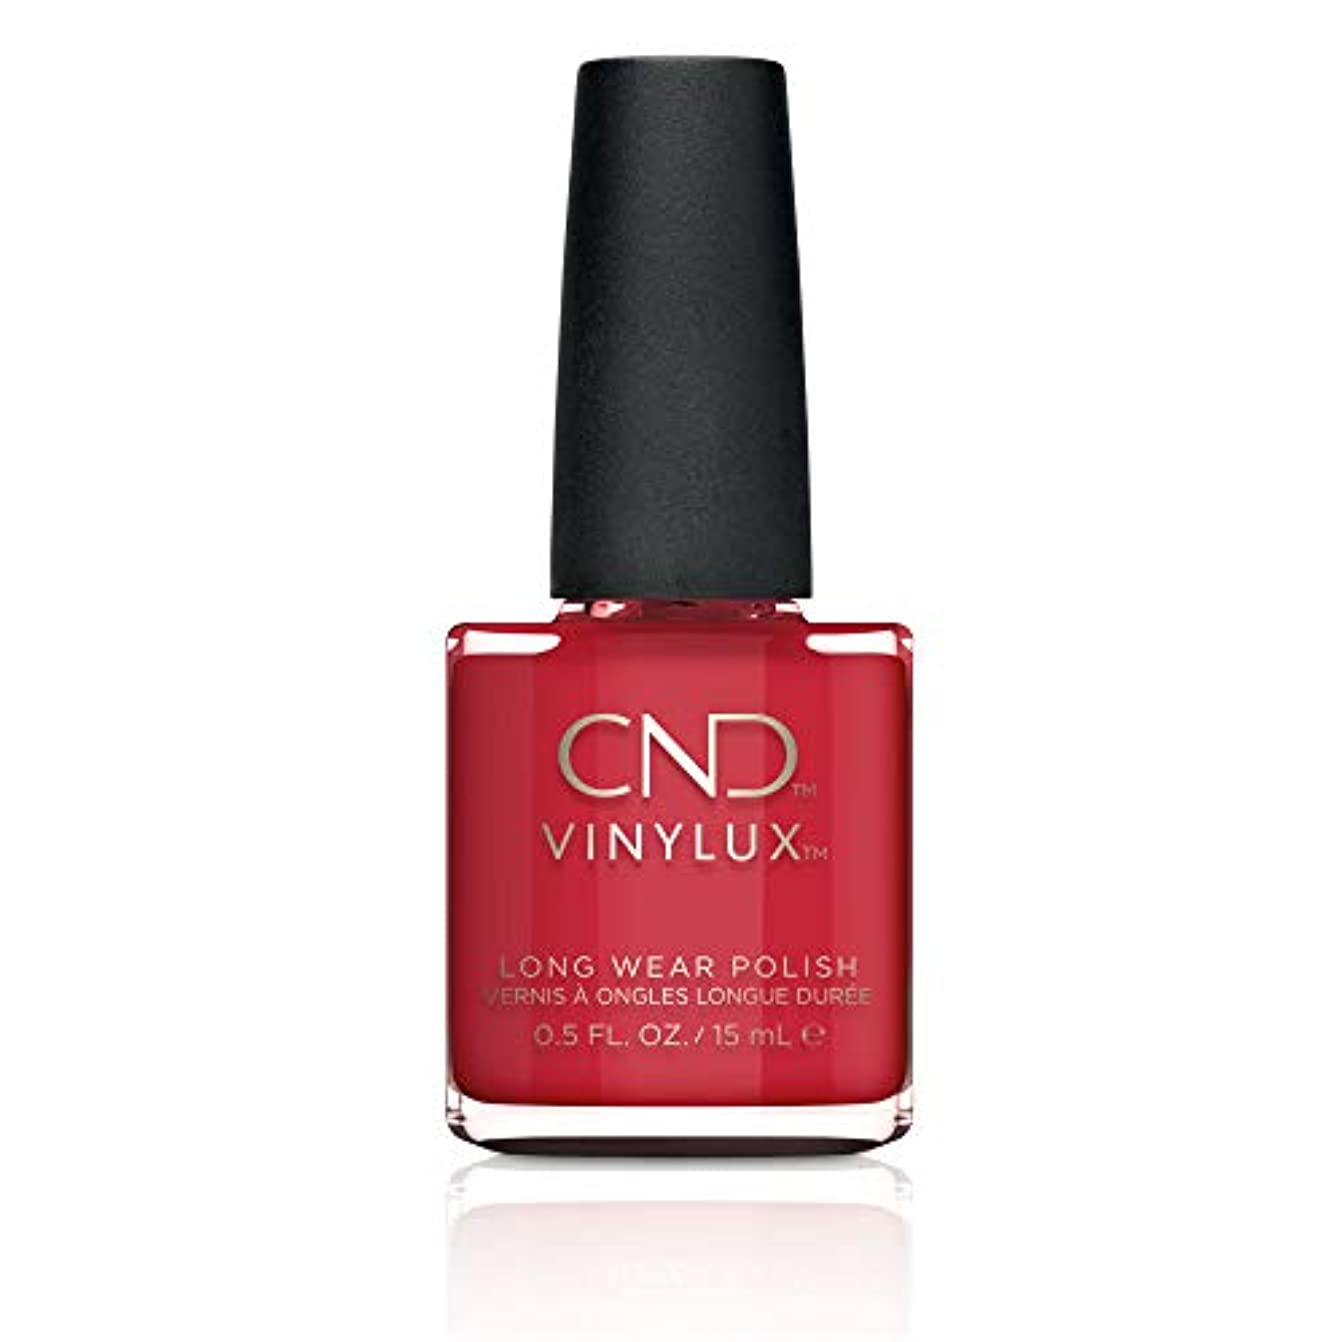 CND Vinylux Weekly Polish Colore 143 Rouge Red 15ml